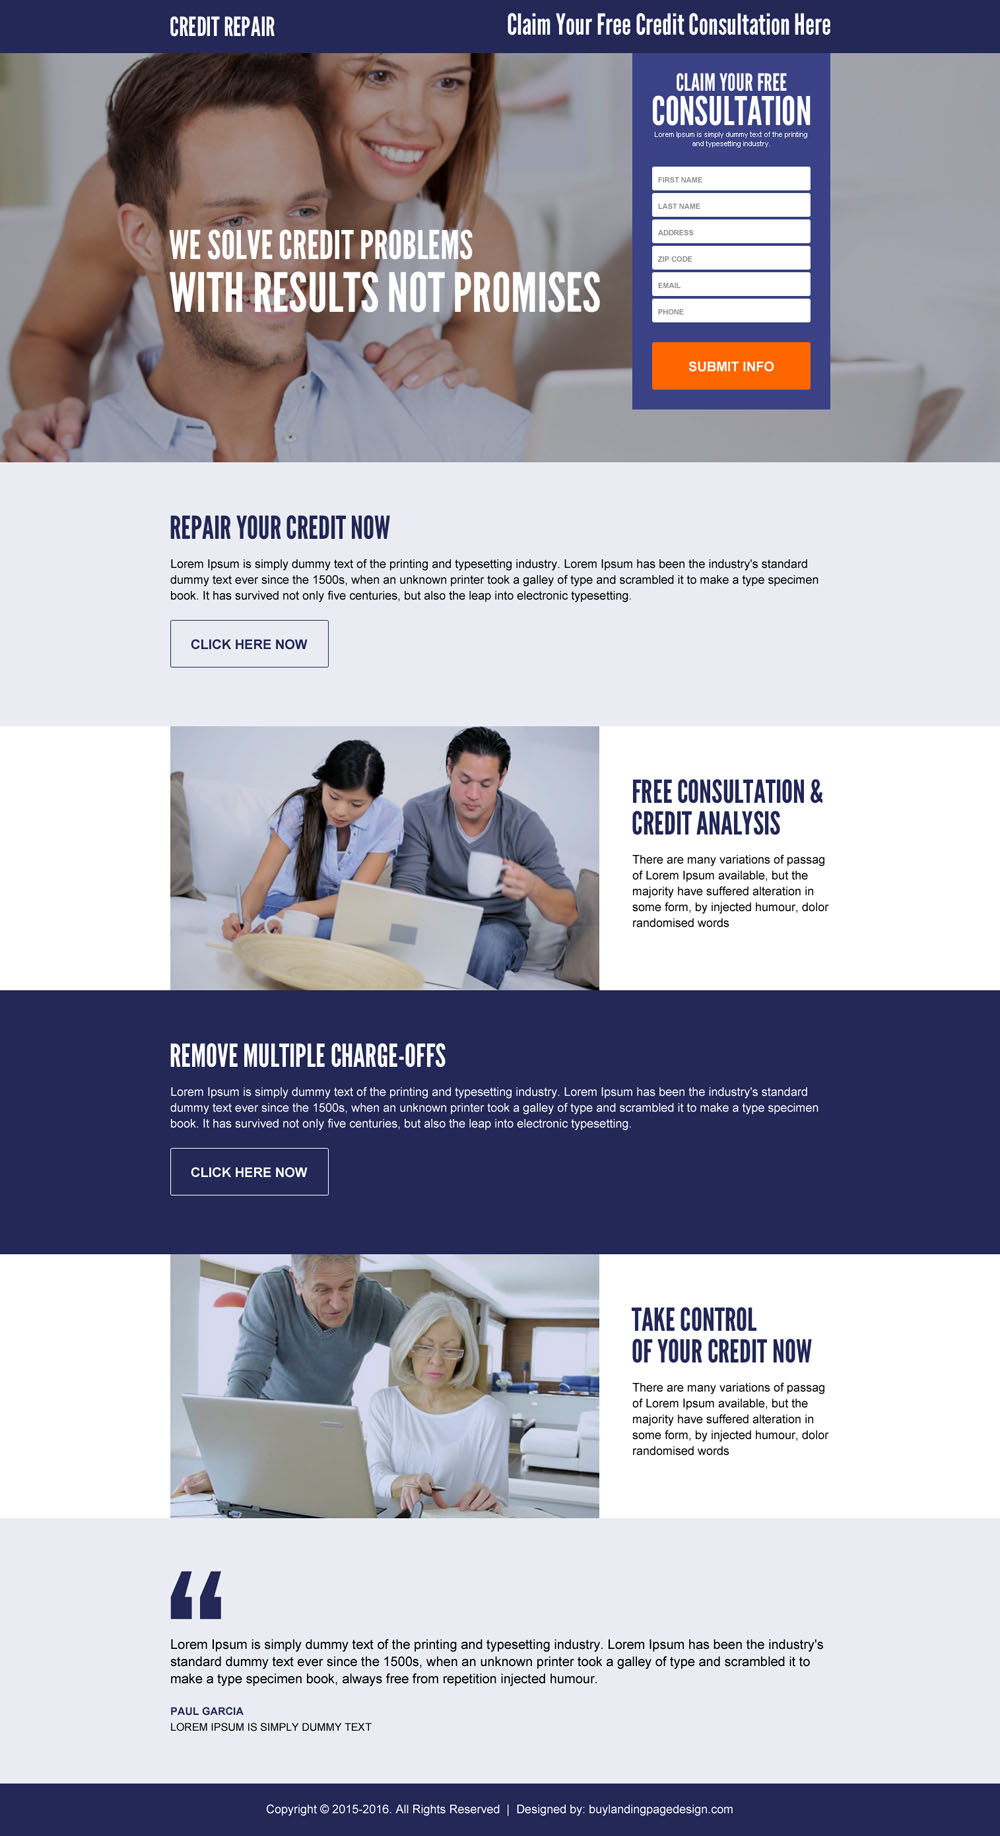 claim-your-free-credit-repair-consultation-lead-gen-converting-landing-page-029